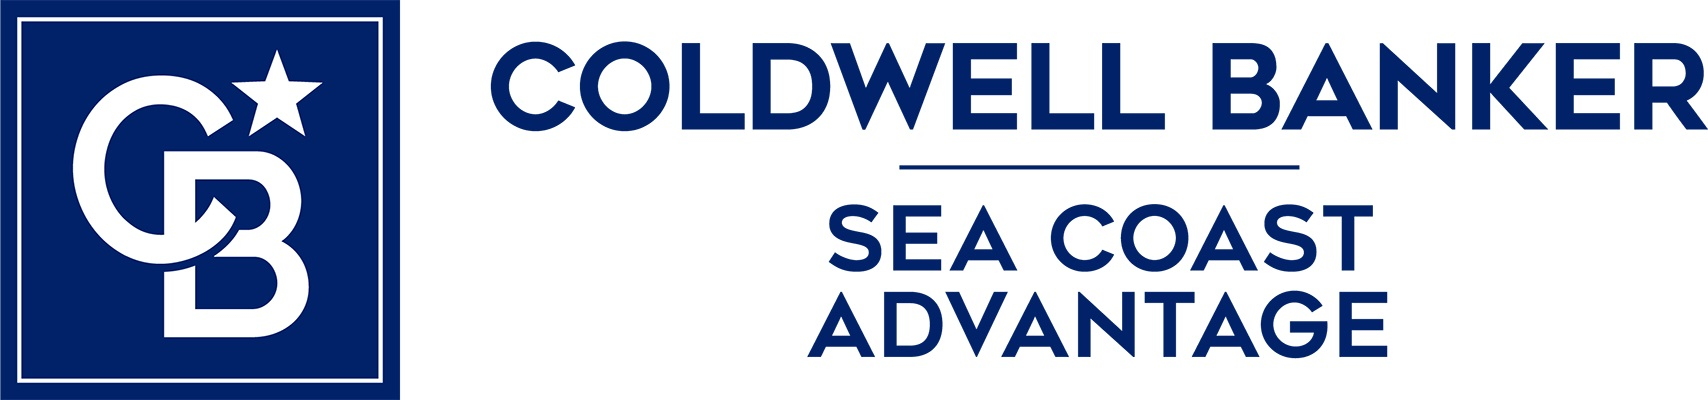 Larry Collins - Coldwell Banker Sea Coast Advantage Realty Logo